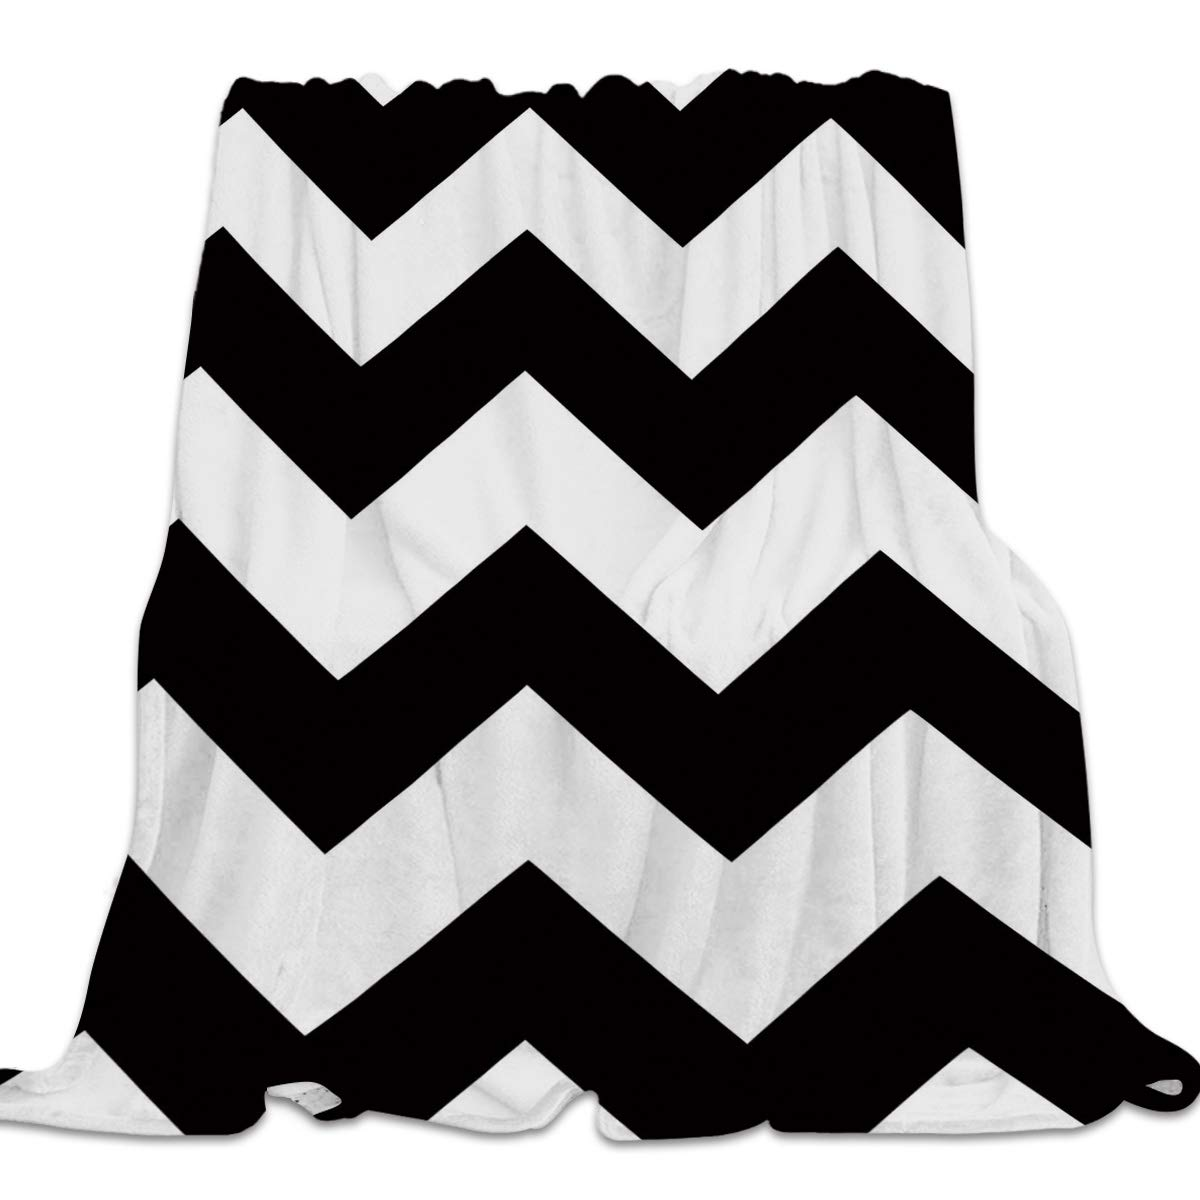 Ripple4yag8431 49x59inch=125x150cm 49x59 Inch Flannel Fleece Bed Blanket Soft ThrowBlankets for Girls Boys,Fuck it Just get Naked Black and White,Lightweight Warm Kids Blankets for Bedroom Living Room Sofa Couch Home Decor